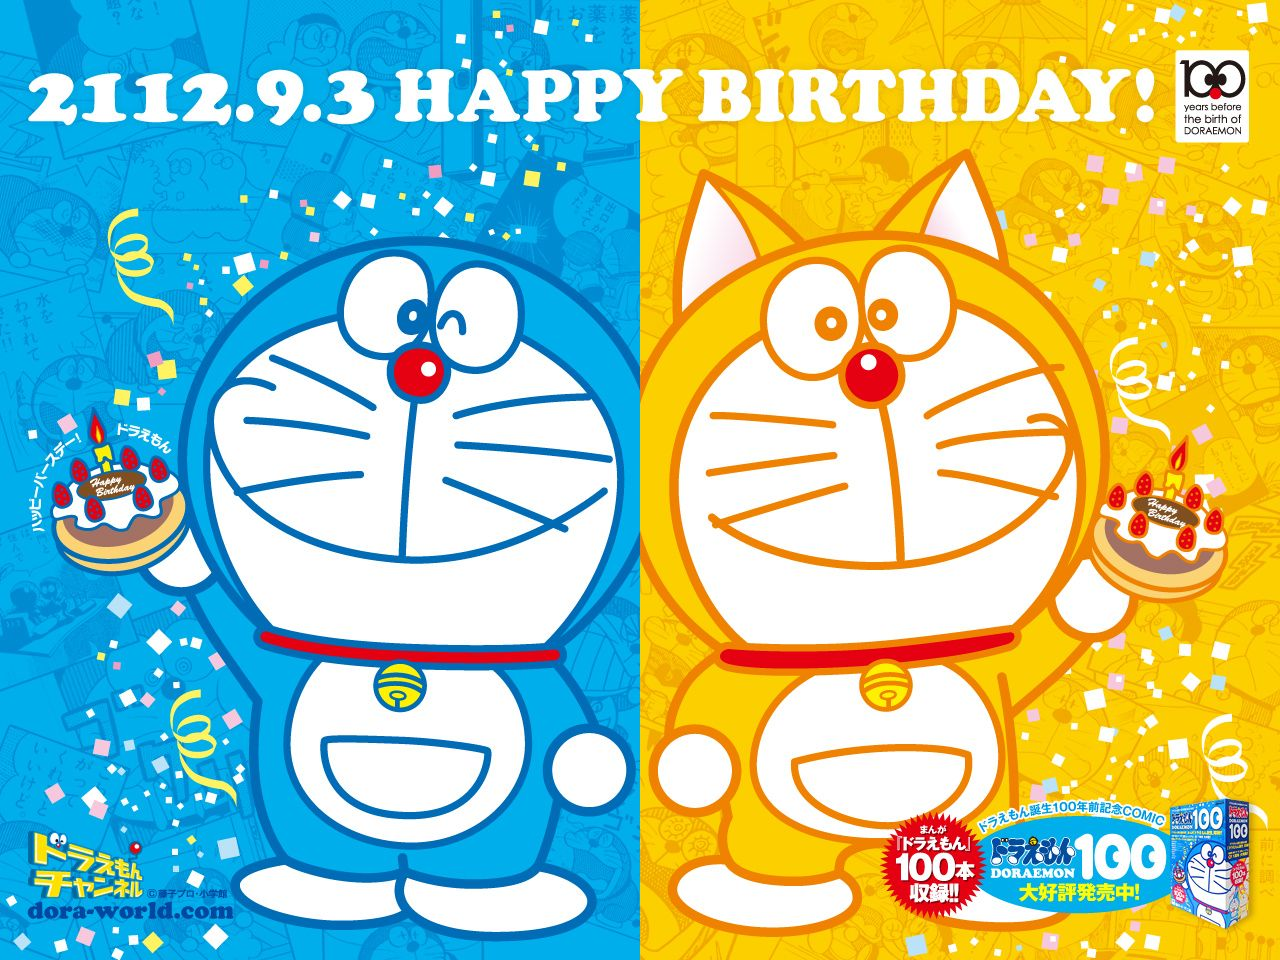 Doraemon Doraemon Pinterest Wallpapers